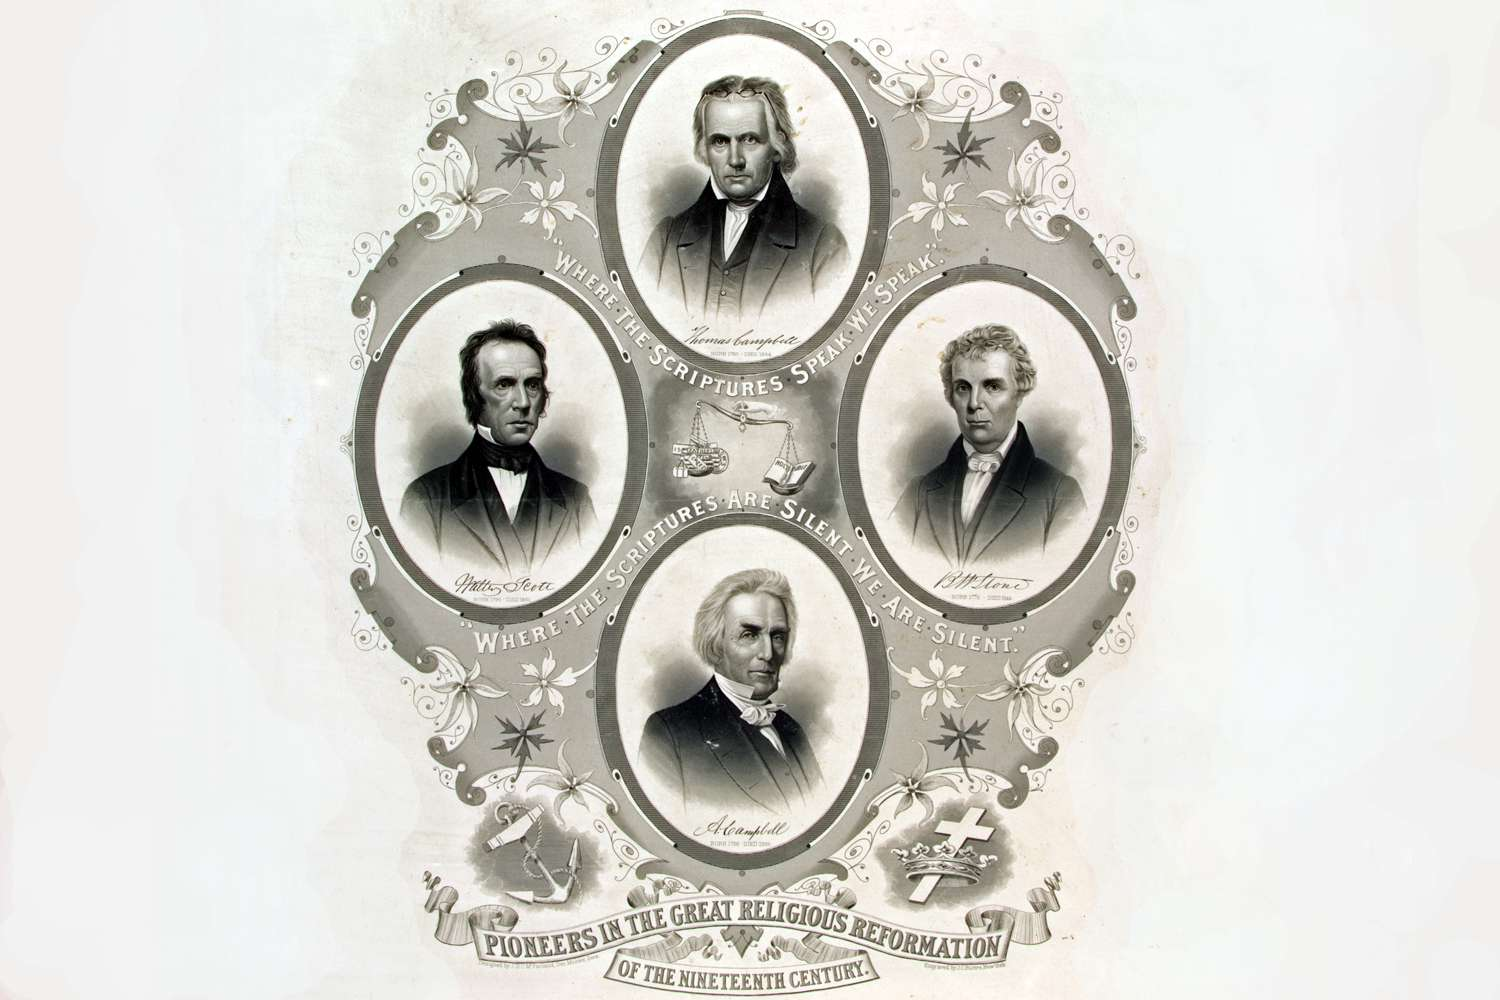 Pioneers in the great religious reformation of the 19th century